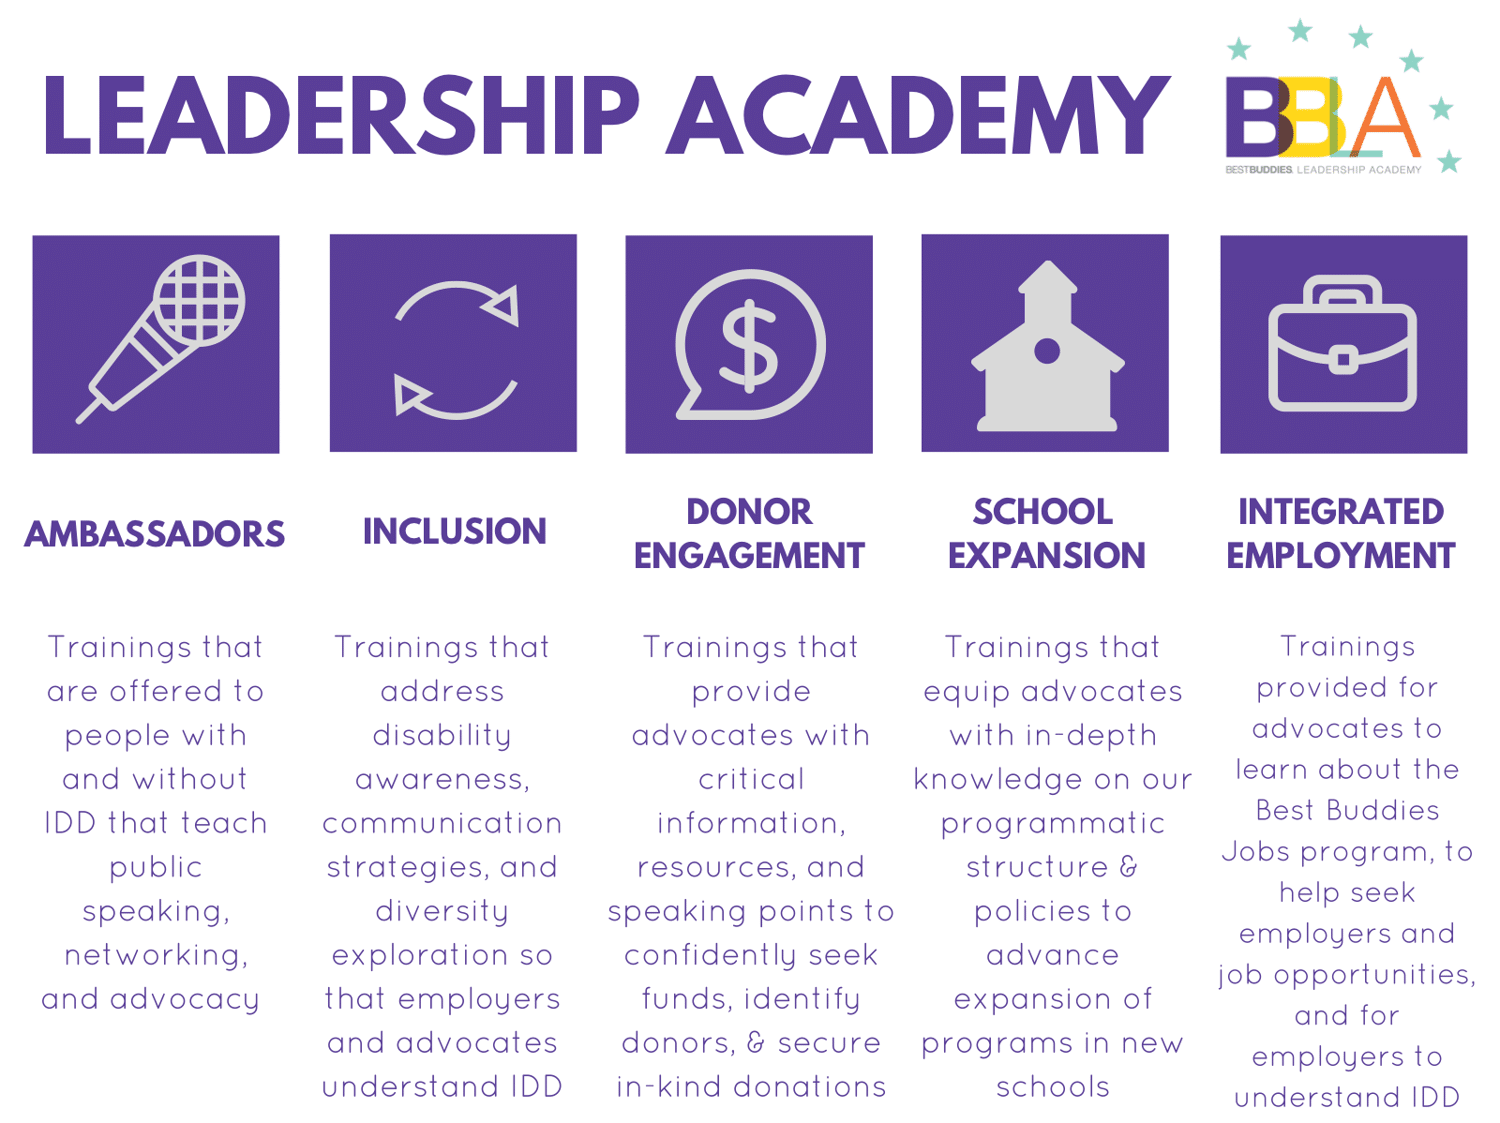 Leadership Academy Photo for BBU